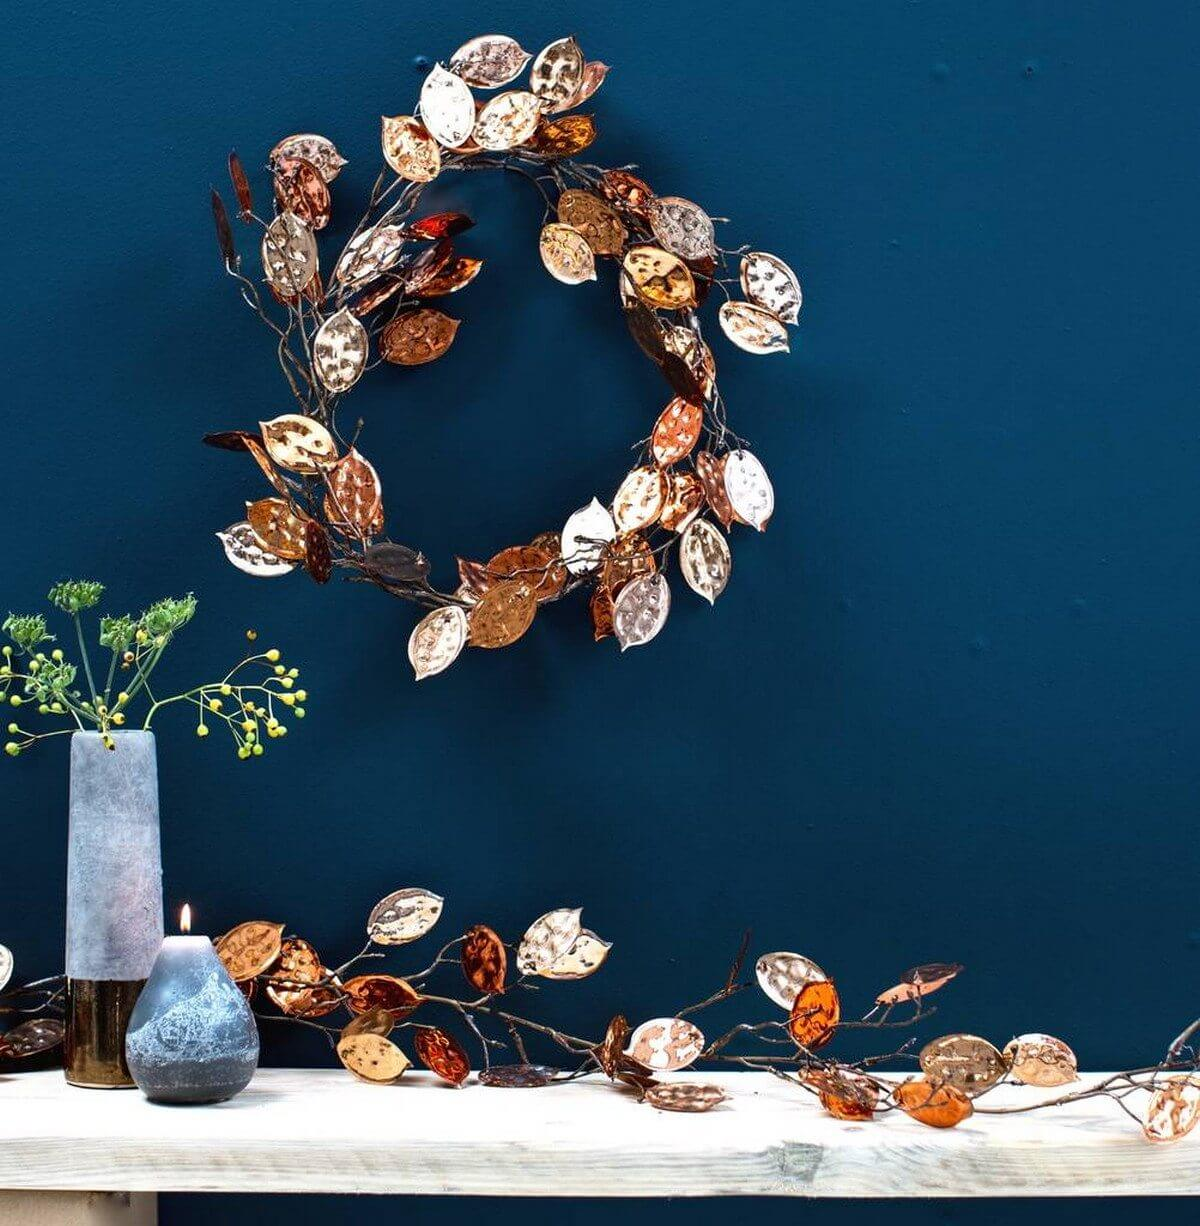 Check out these creative ways to use garlands to spruce up your home for the holidays.